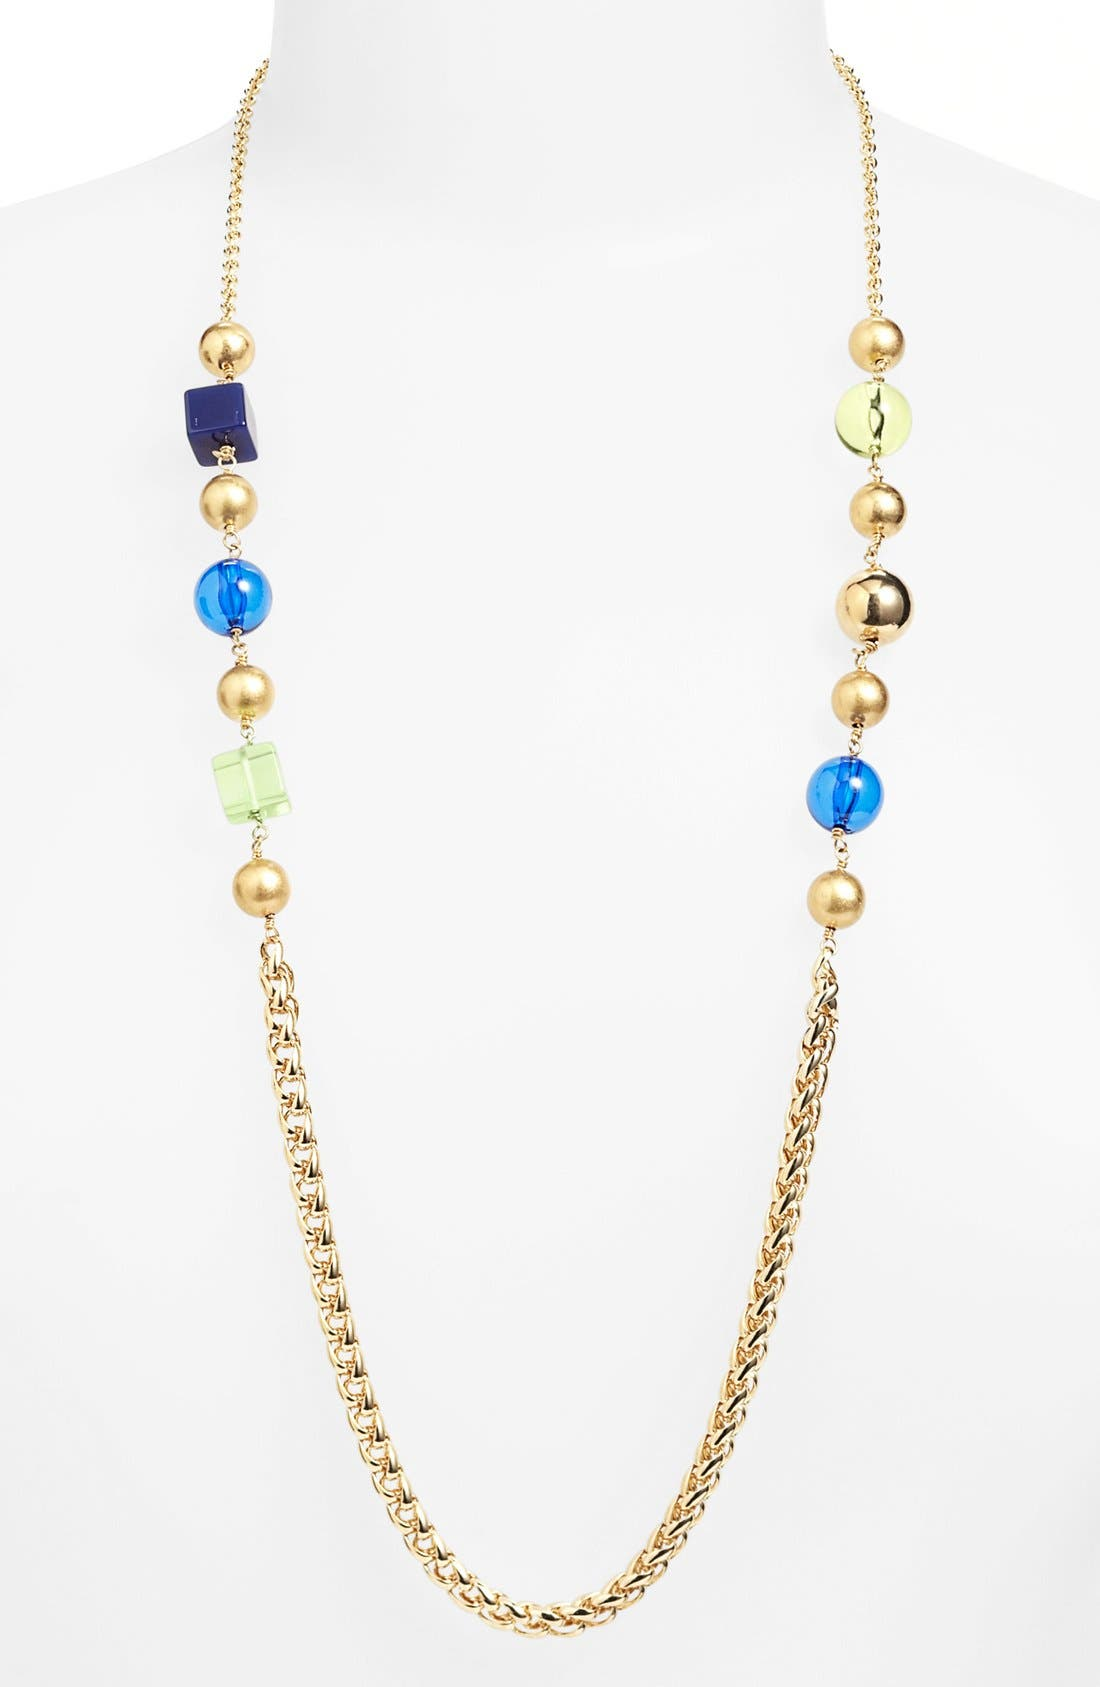 Main Image - MARC BY MARC JACOBS 'Ball & Chains' Long Station Necklace